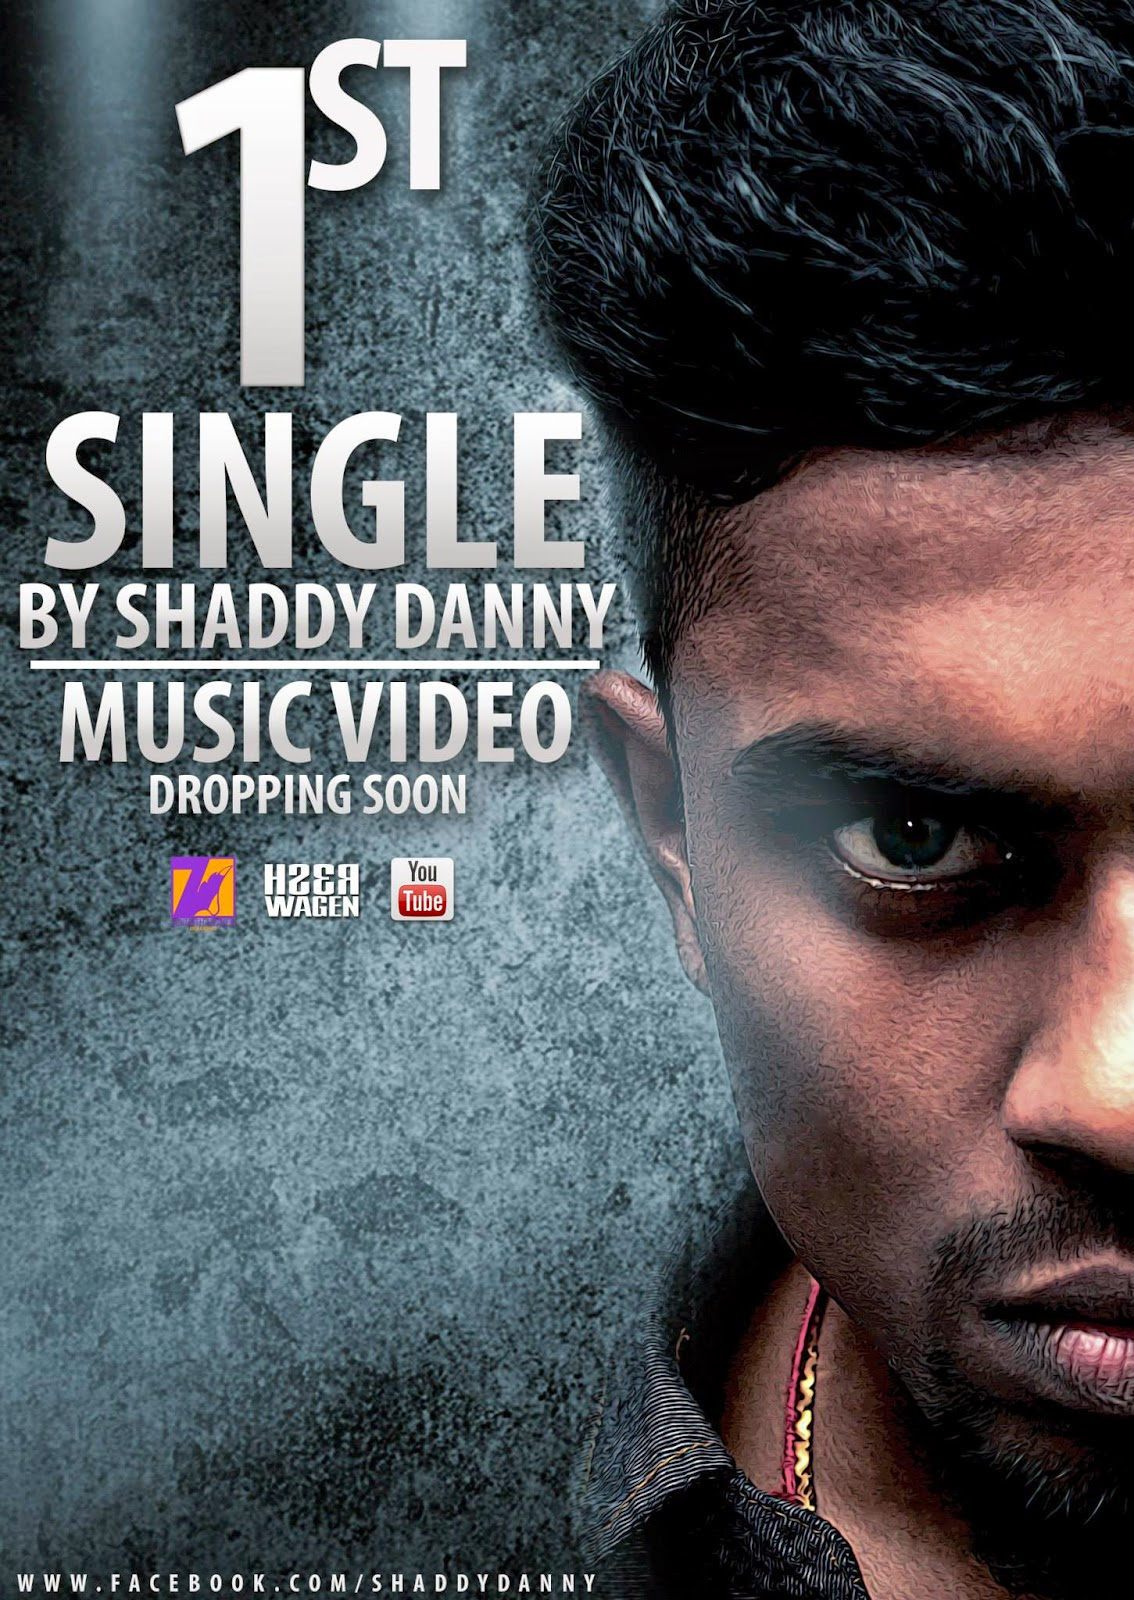 Shaddy Danny's first single preview poster